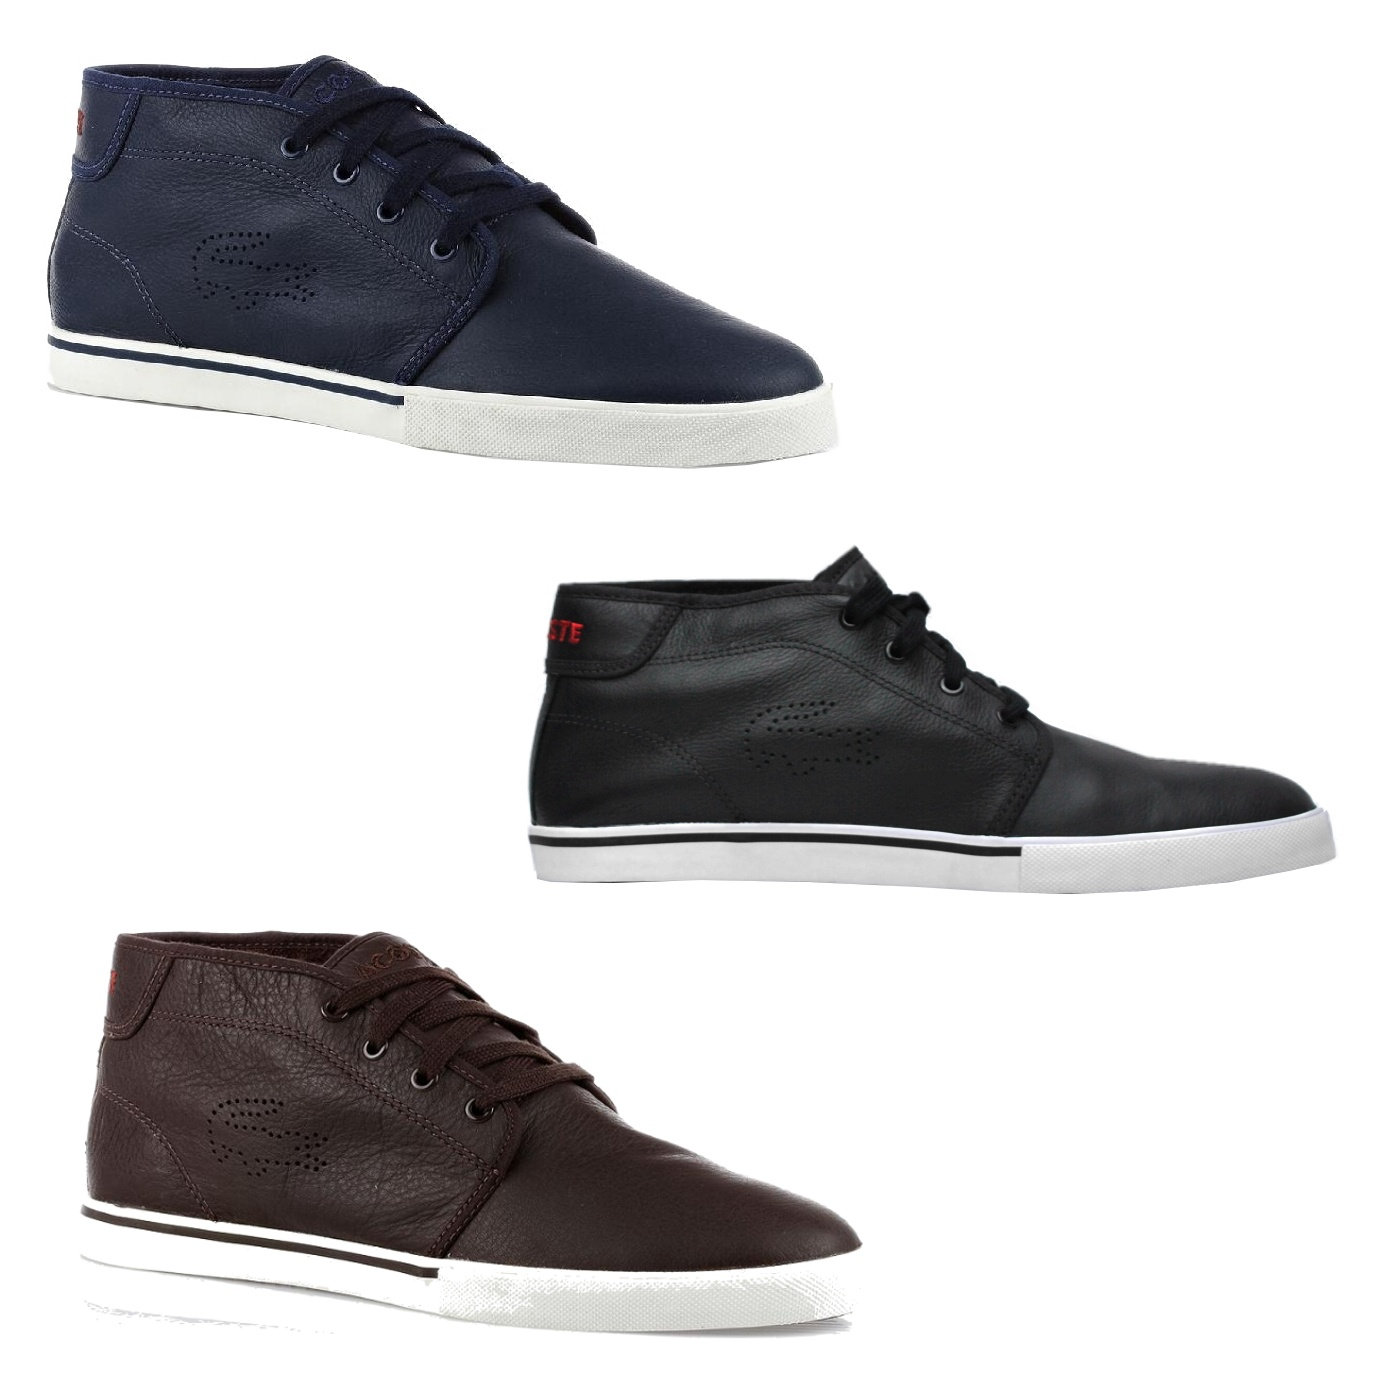 lacoste ampthill ci spm schuhe herren sneaker leder diverse farben ebay. Black Bedroom Furniture Sets. Home Design Ideas